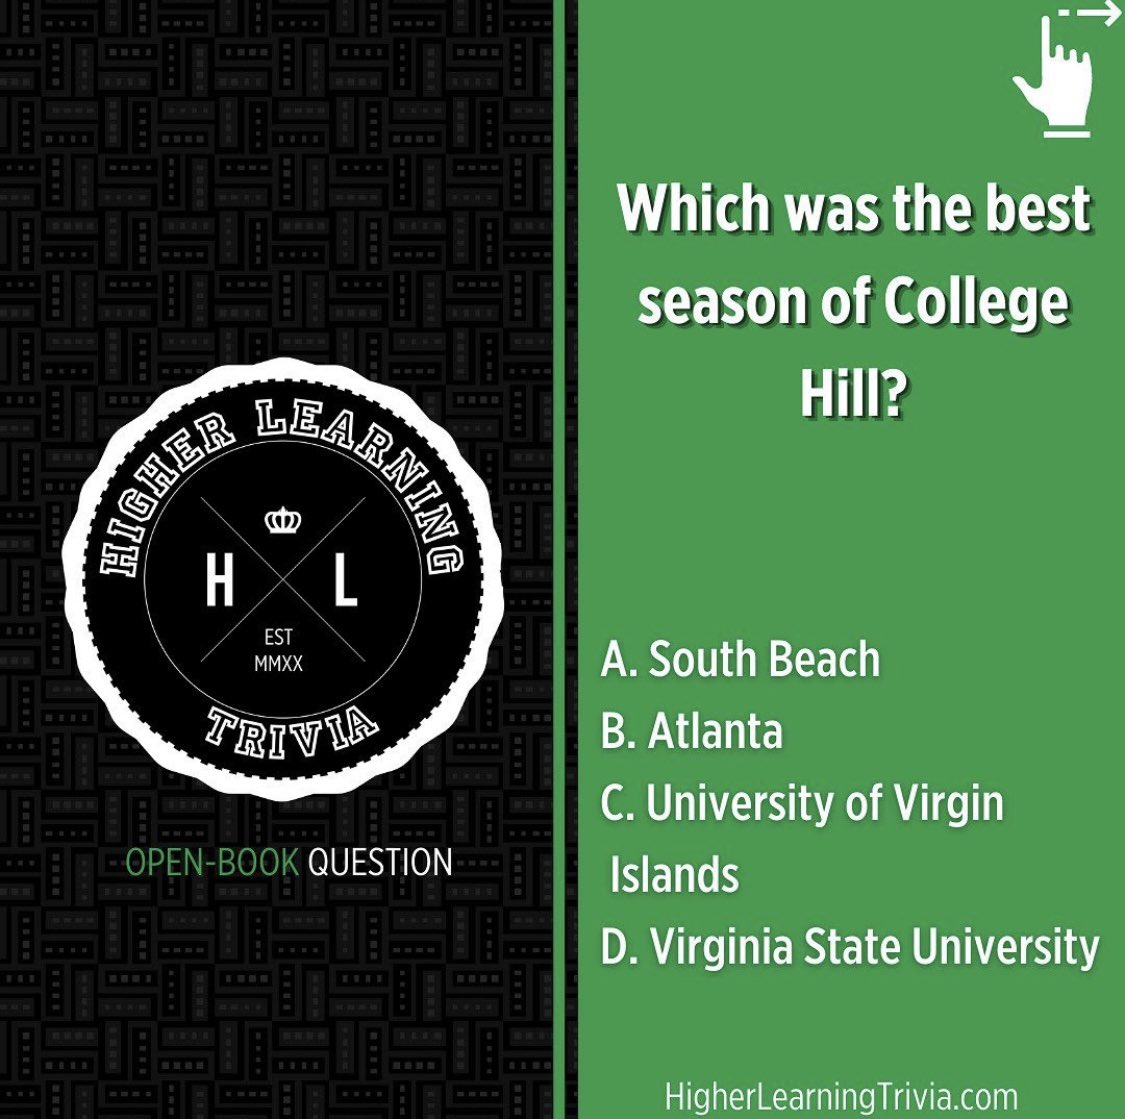 Let us know!  HBCU TRIVIA  #HLTrivia #HigherLearningTrivia  #hbcu #hbcupride  #trivia #games #gamenight #blacktrivia #spelhouse #hbculove #hbcuhomecoming #illustrious #buyblack